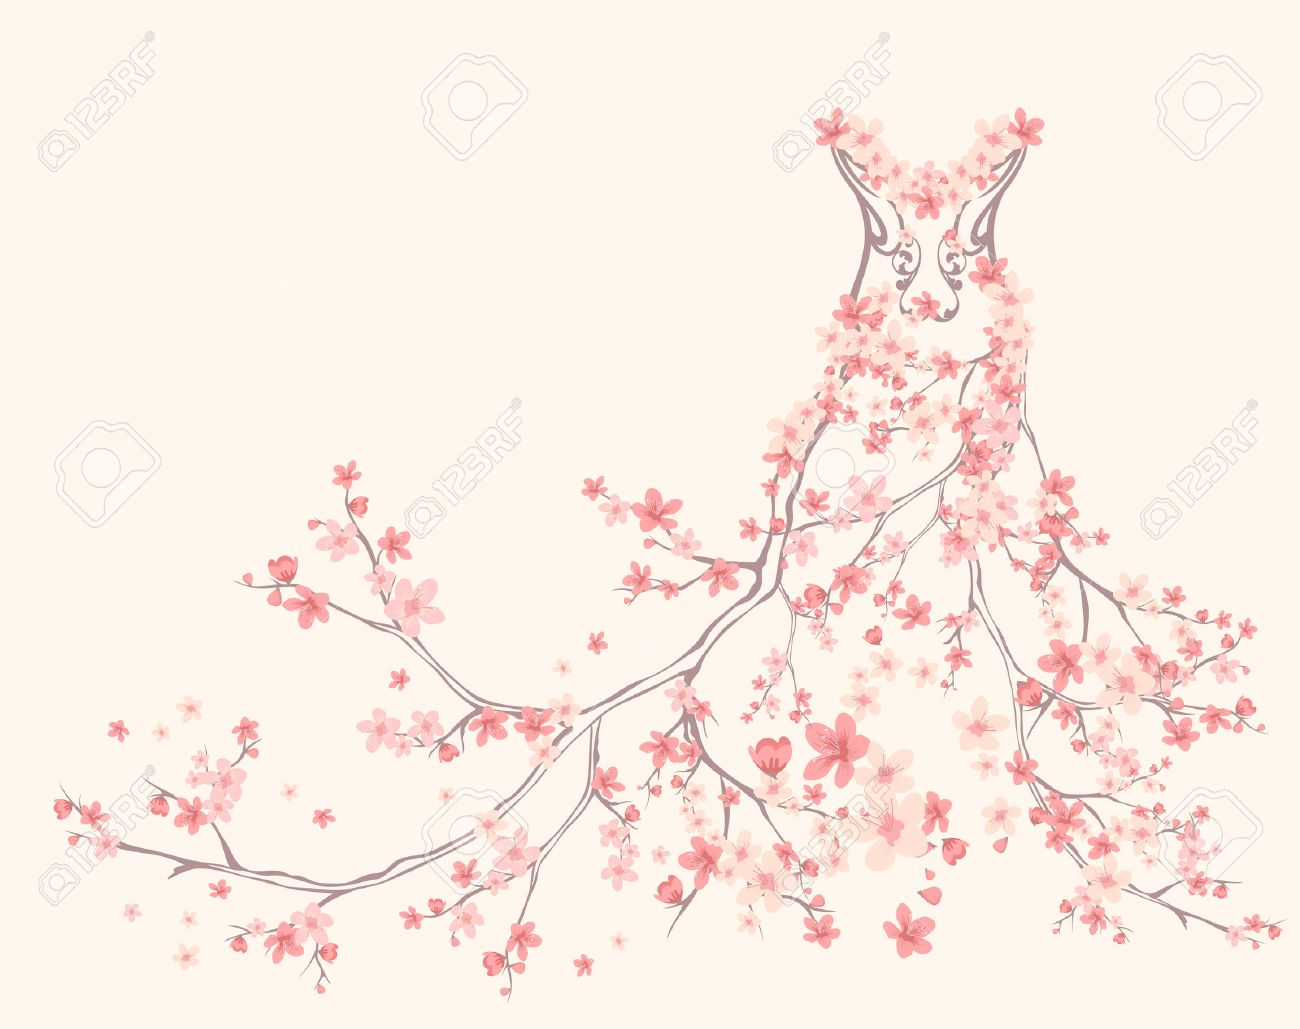 spring season dress made of tender pink flower branches - 26362909